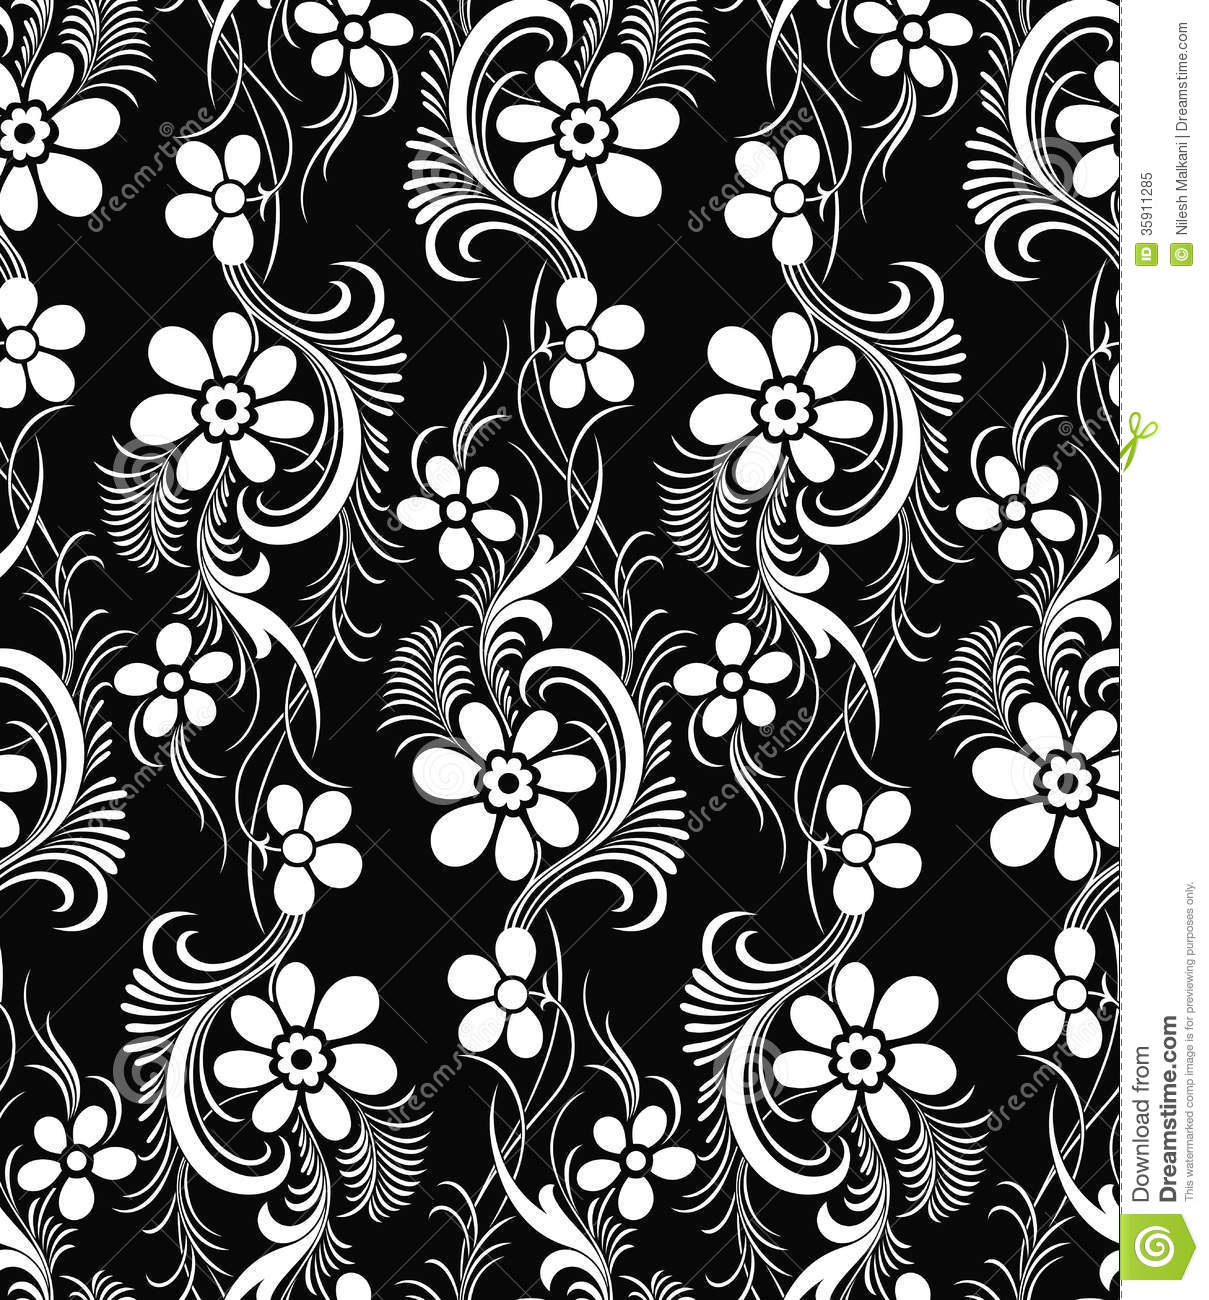 Seamless Vector Damask Wallpaper Royalty Free Stock Photo ...